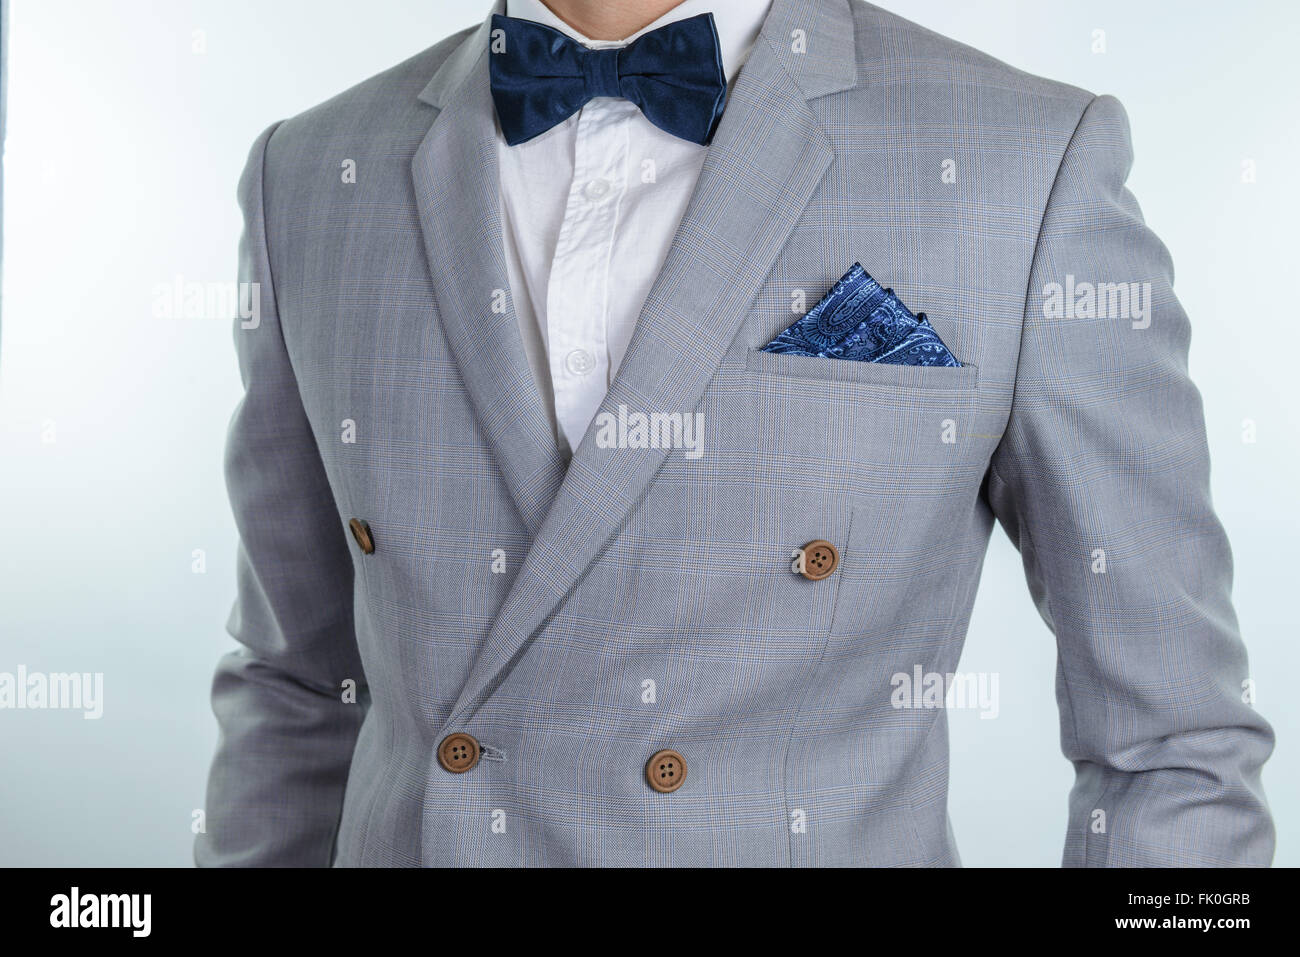 Man in grey suit, plaid texture, blue bowtie and pocket square, close up white background - Stock Image